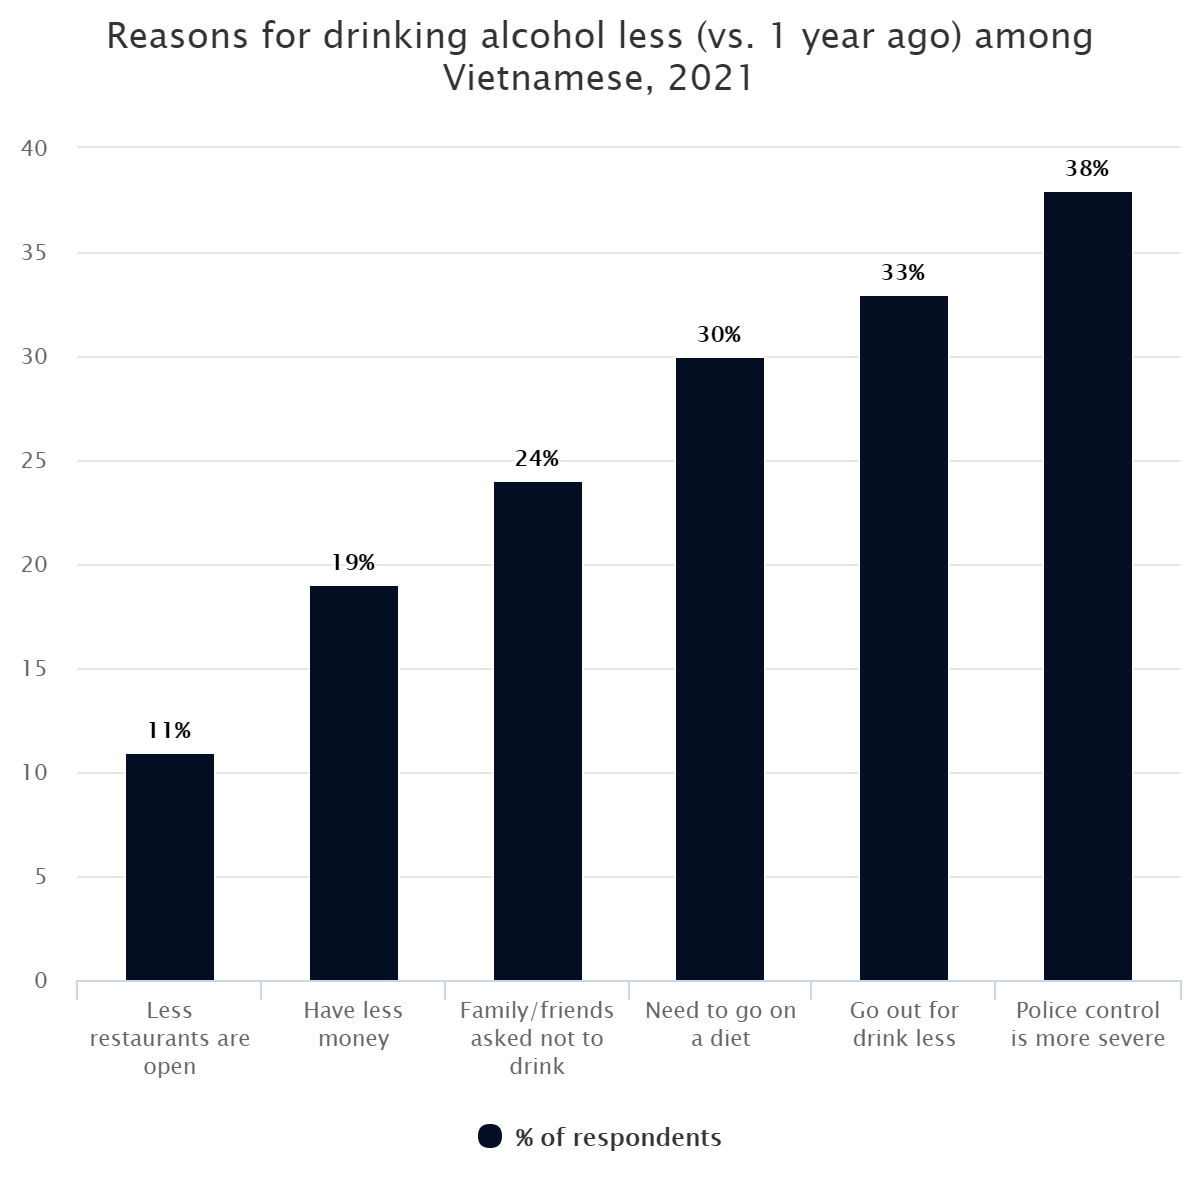 Reasons for drinking alcohol less (vs. 1 year ago) among Vietnamese, 2021